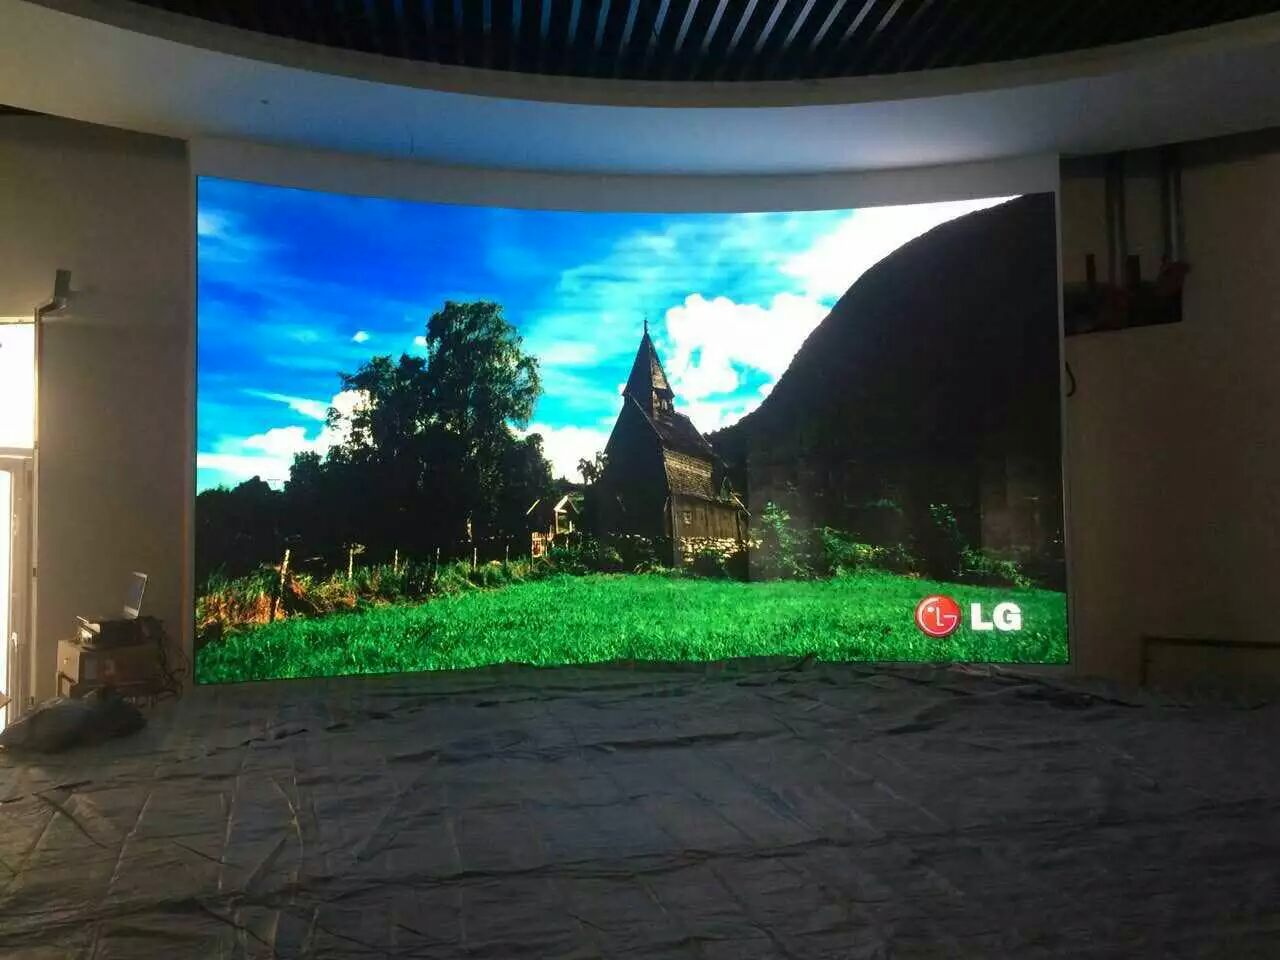 Huabangying full-color LED display screen solution